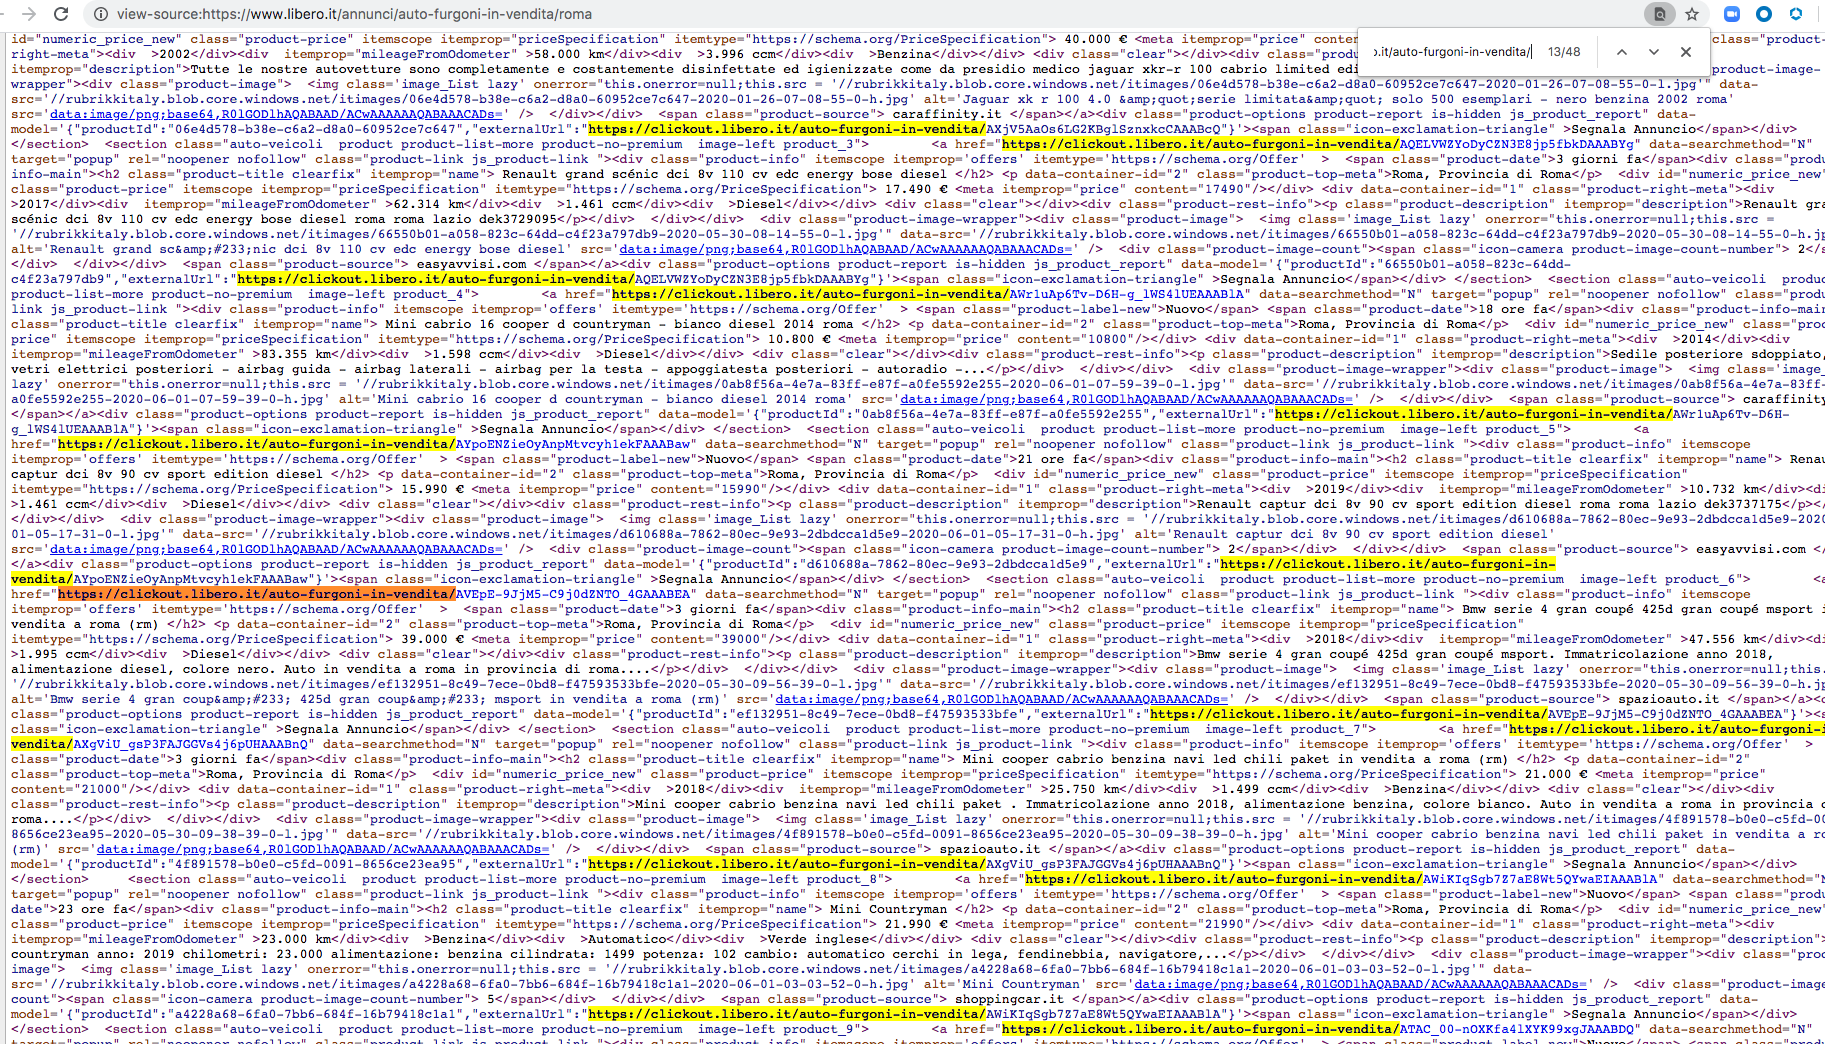 This image shows all the external links, which are highlighted, pointing to libero[.]it. Though the link appears legitimate, clicking it redirects the user to a malicious site.